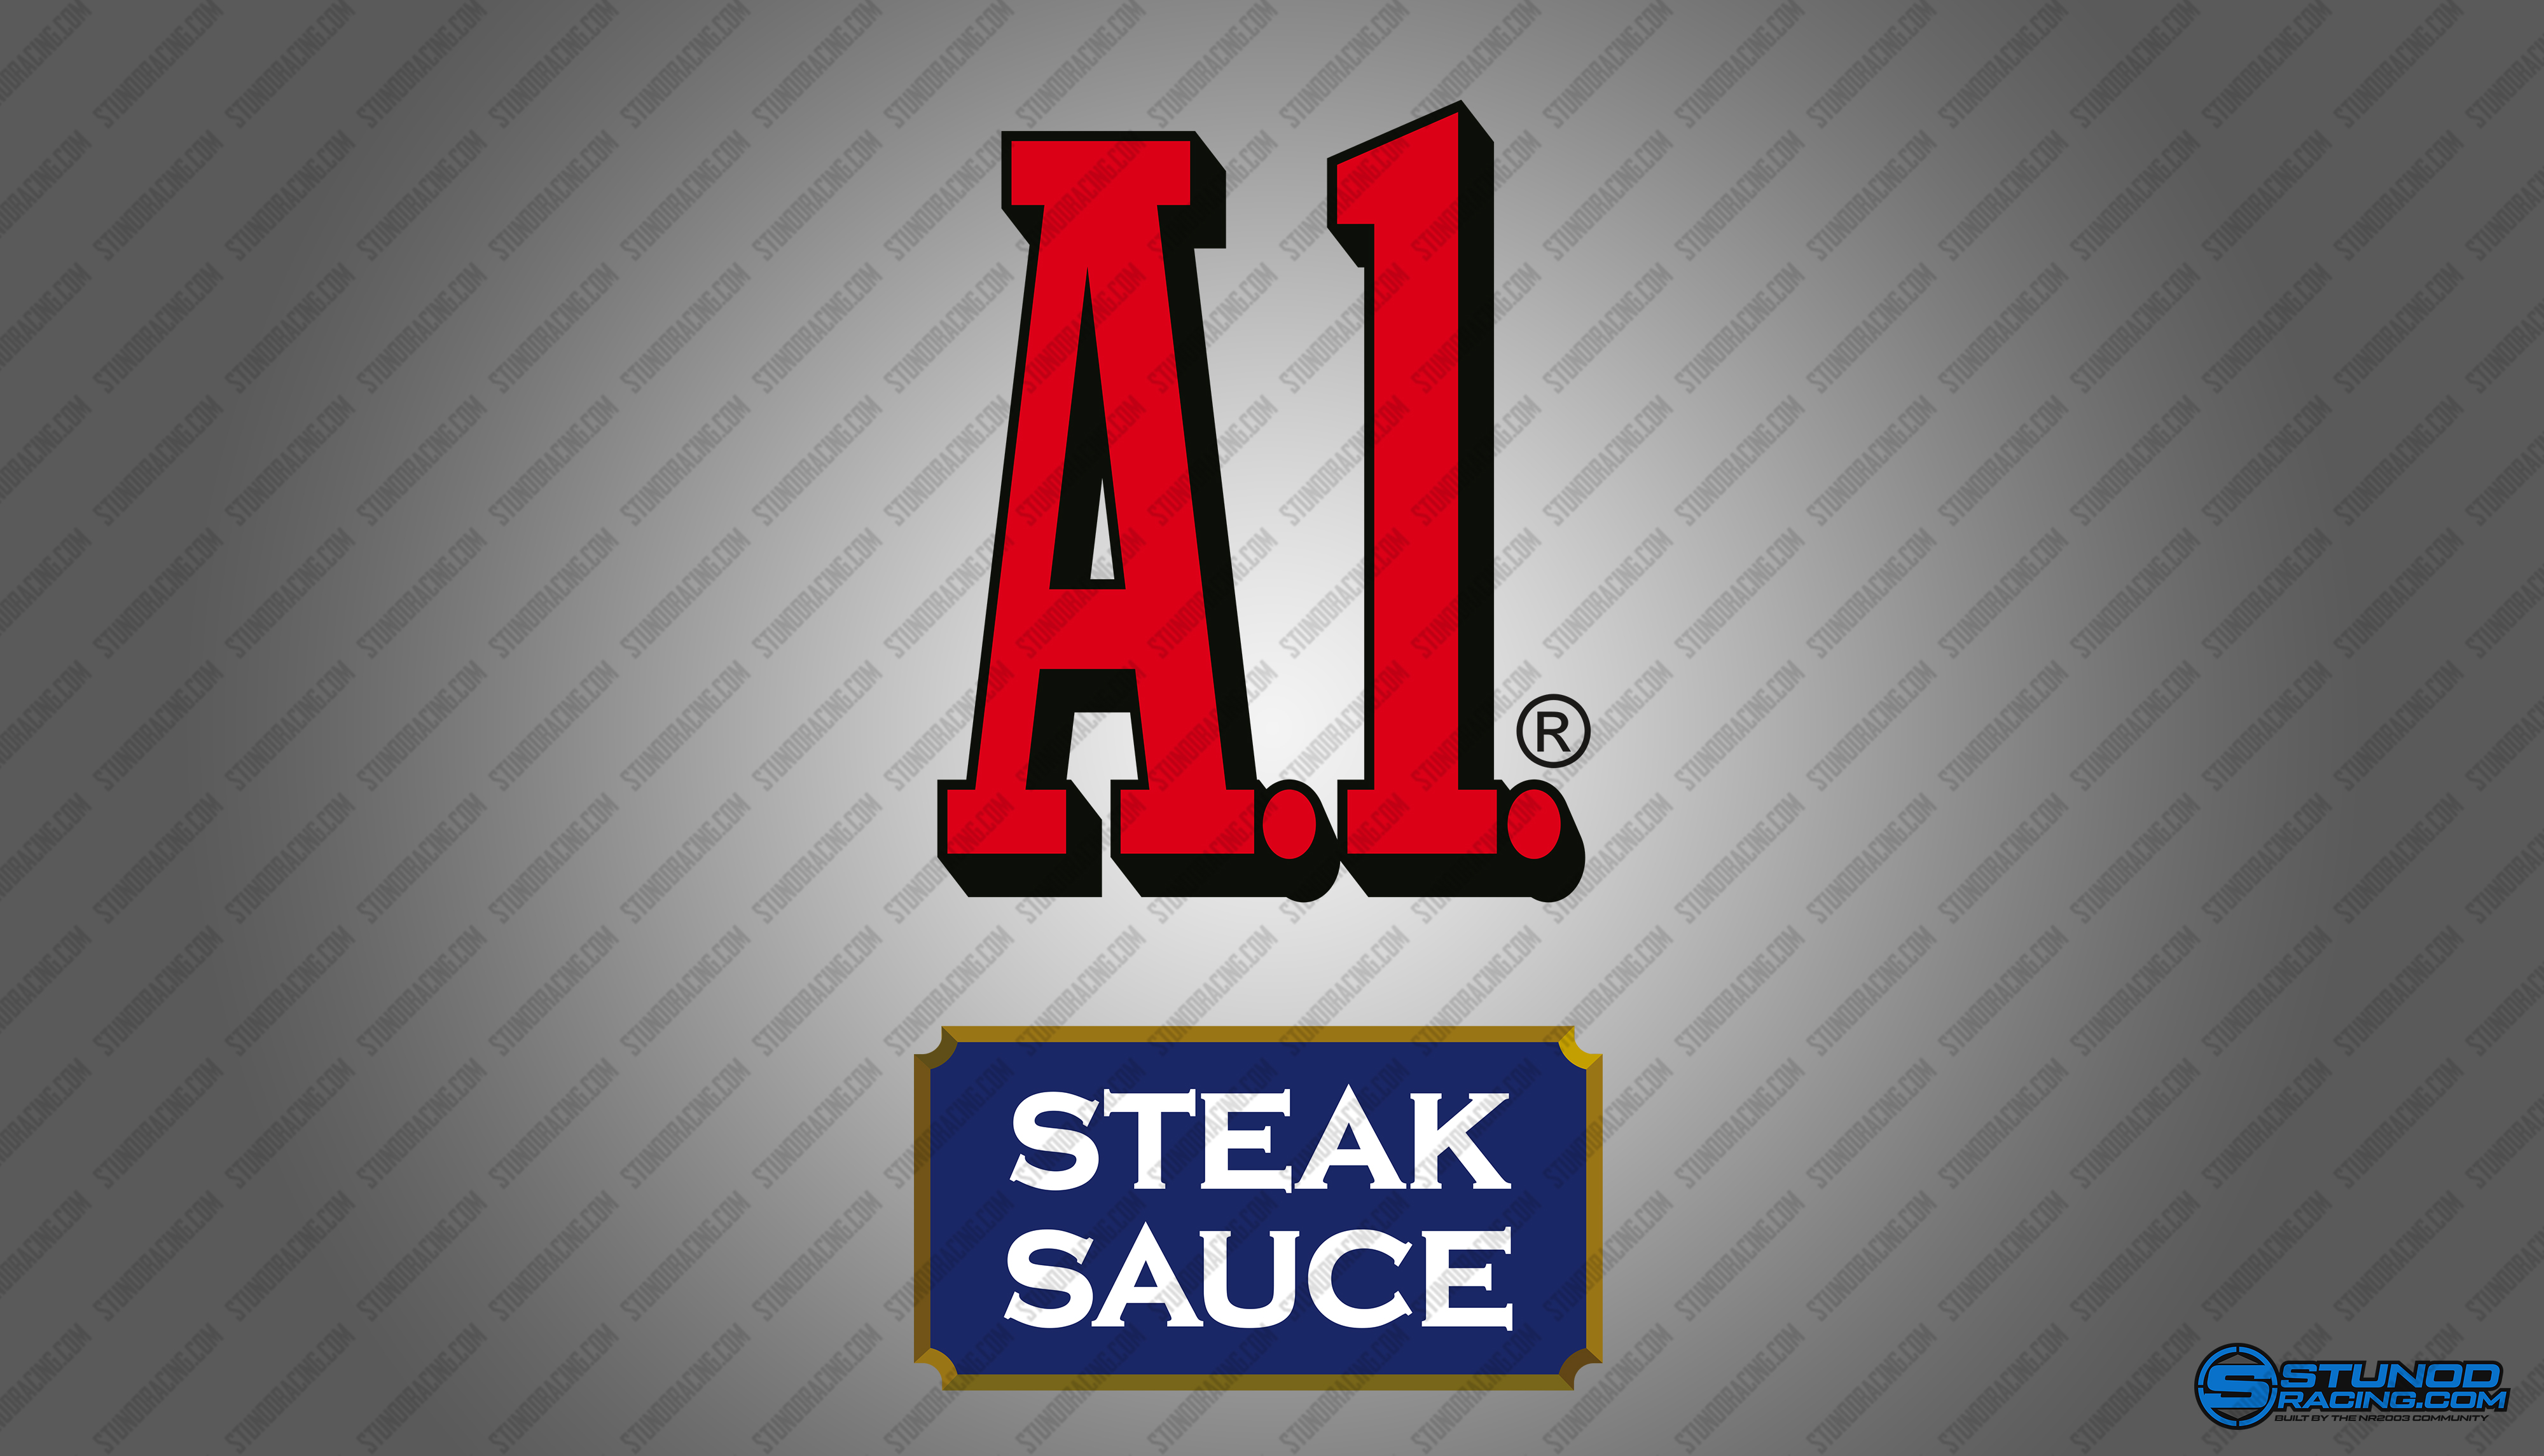 StunodRacing_A1_Steak-Sauce_Logo.jpg